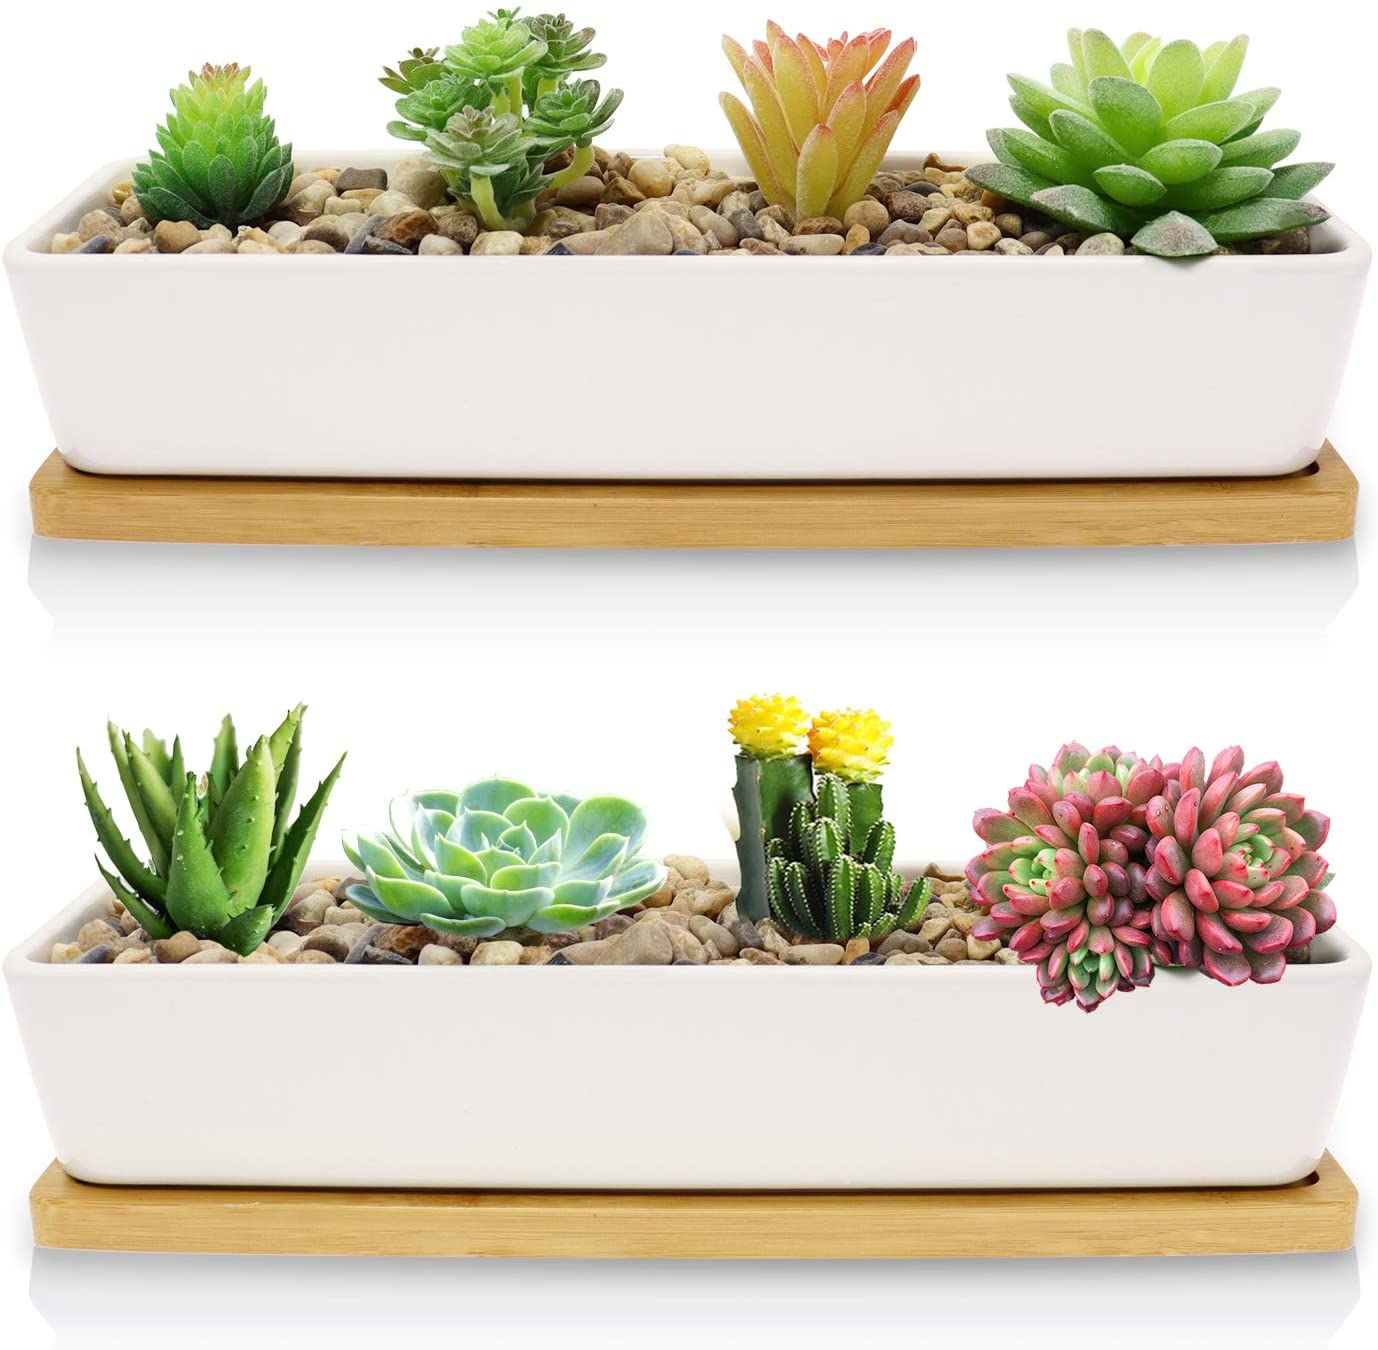 Farielyn-X 2 Pack White Succulent Planter Pots, 11.1 inch Long Rectangle Ceramic Plant Container with Bamboo Saucers, Mini Flower Cactus Pot Indoor Outdoor Home Garden Kitchen Decor, Plant not Include